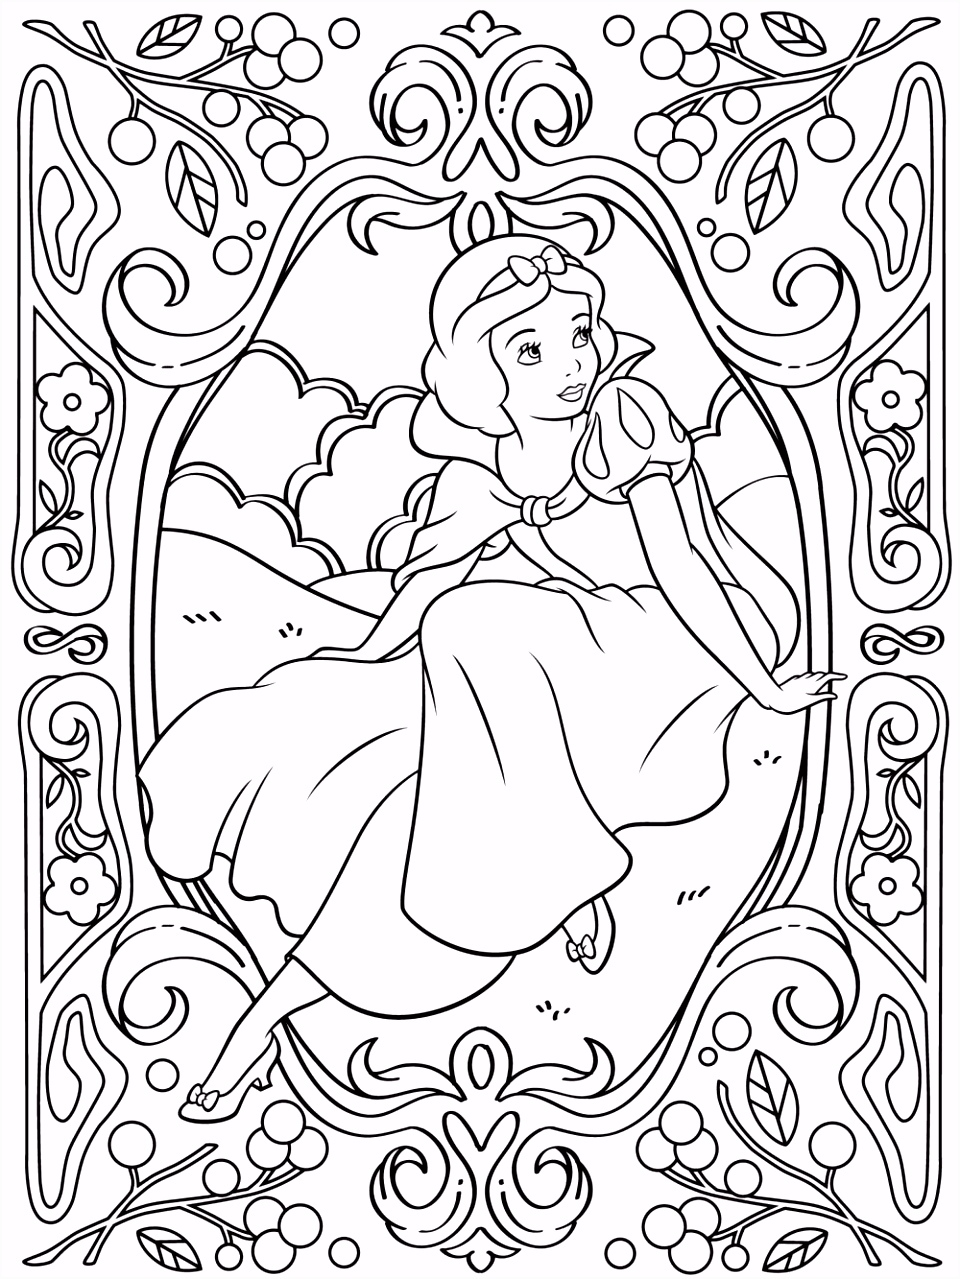 Celebrate National Coloring Book Day With DIY Disney